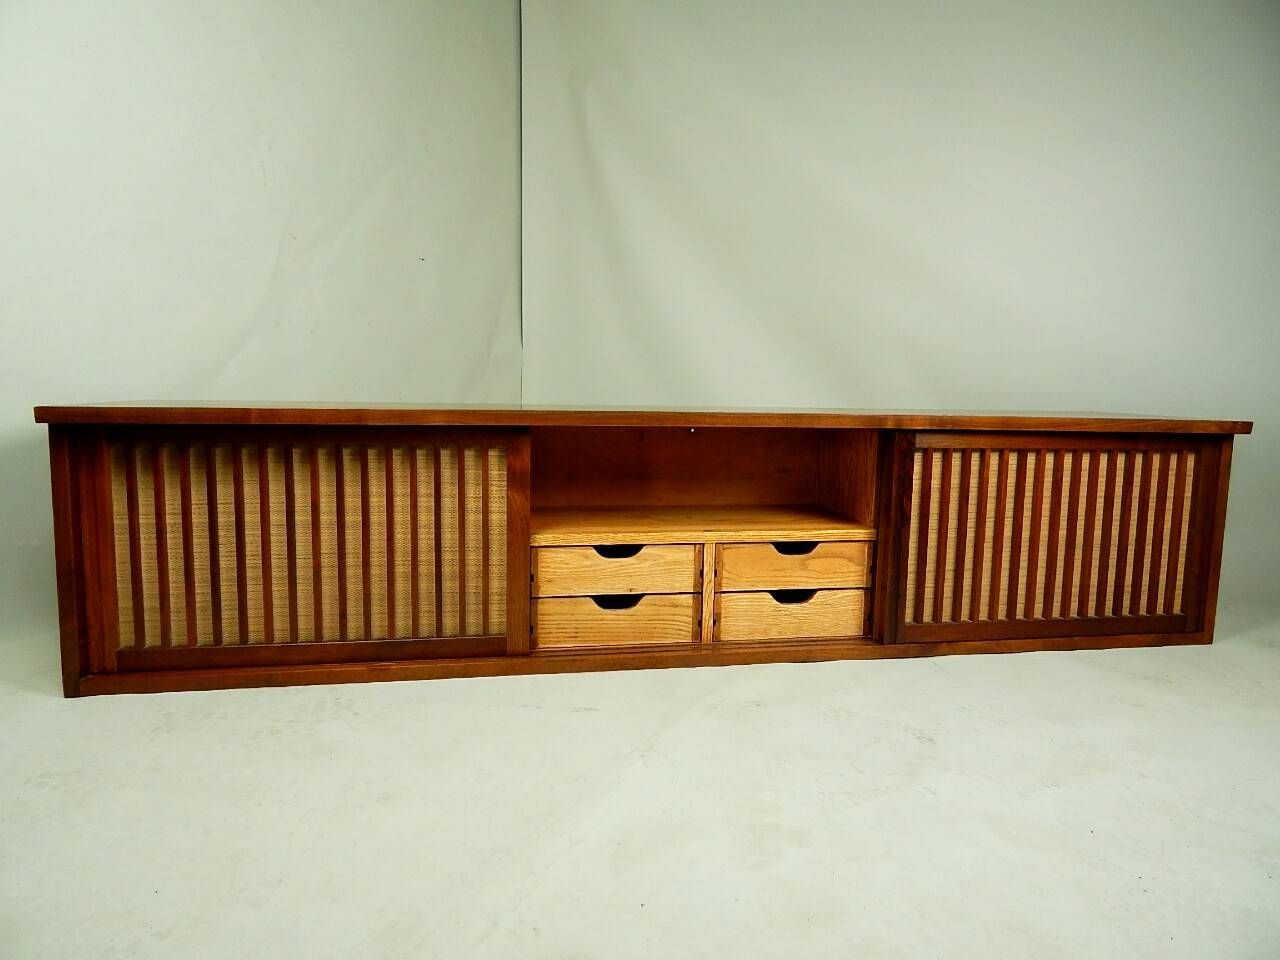 20th Century Walnut Wall Cabinet by George Nakashima For Sale 1